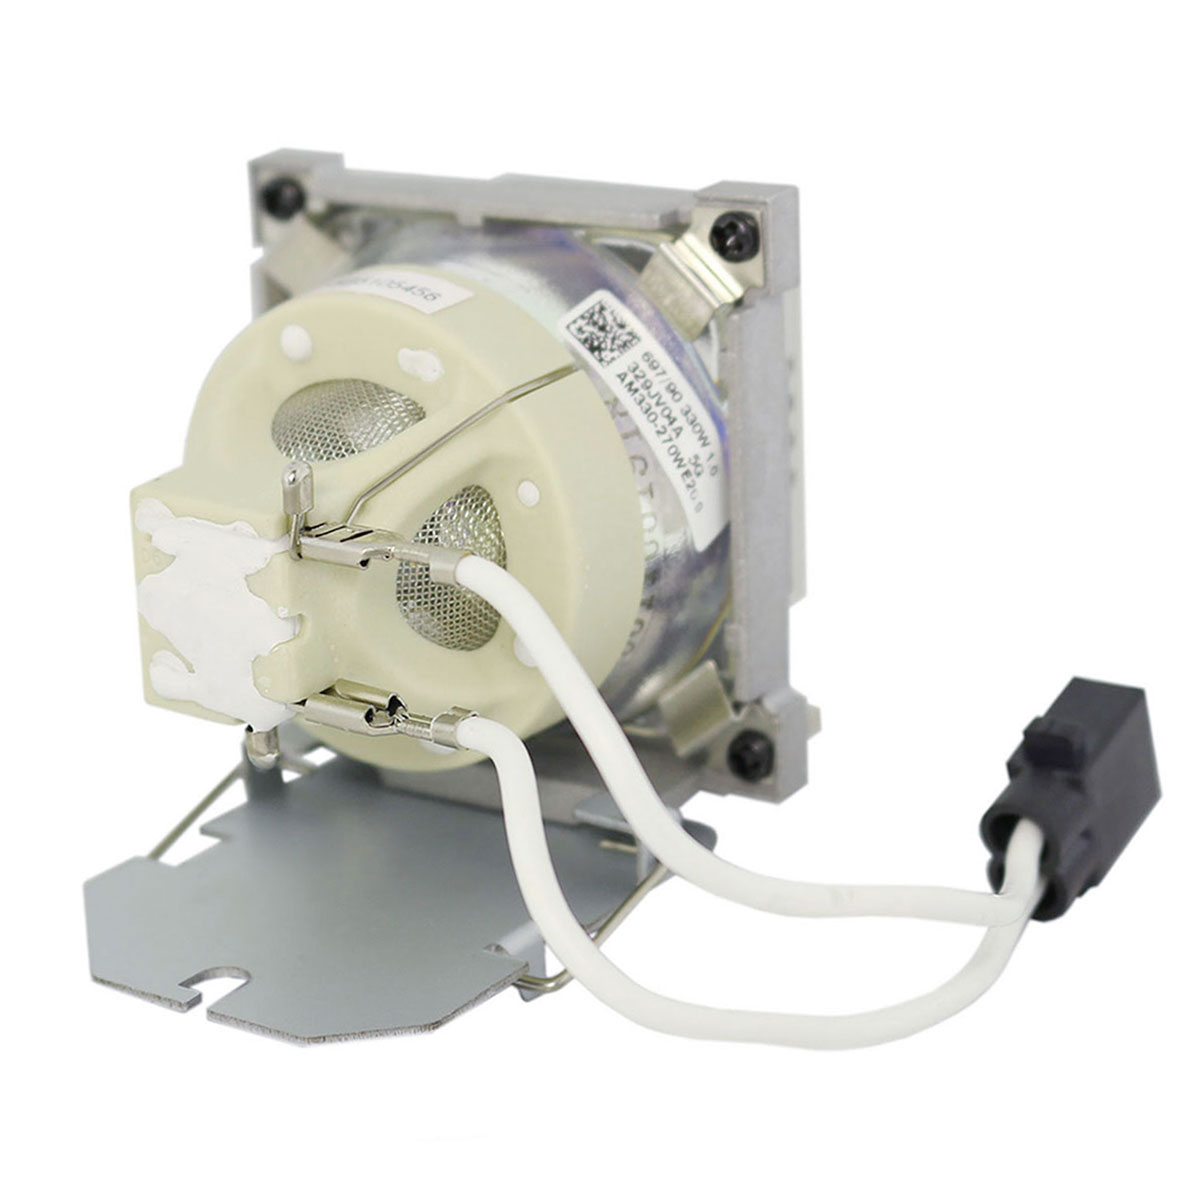 Original Philips Projector Lamp Replacement with Housing for BenQ TP4940 - image 2 of 5